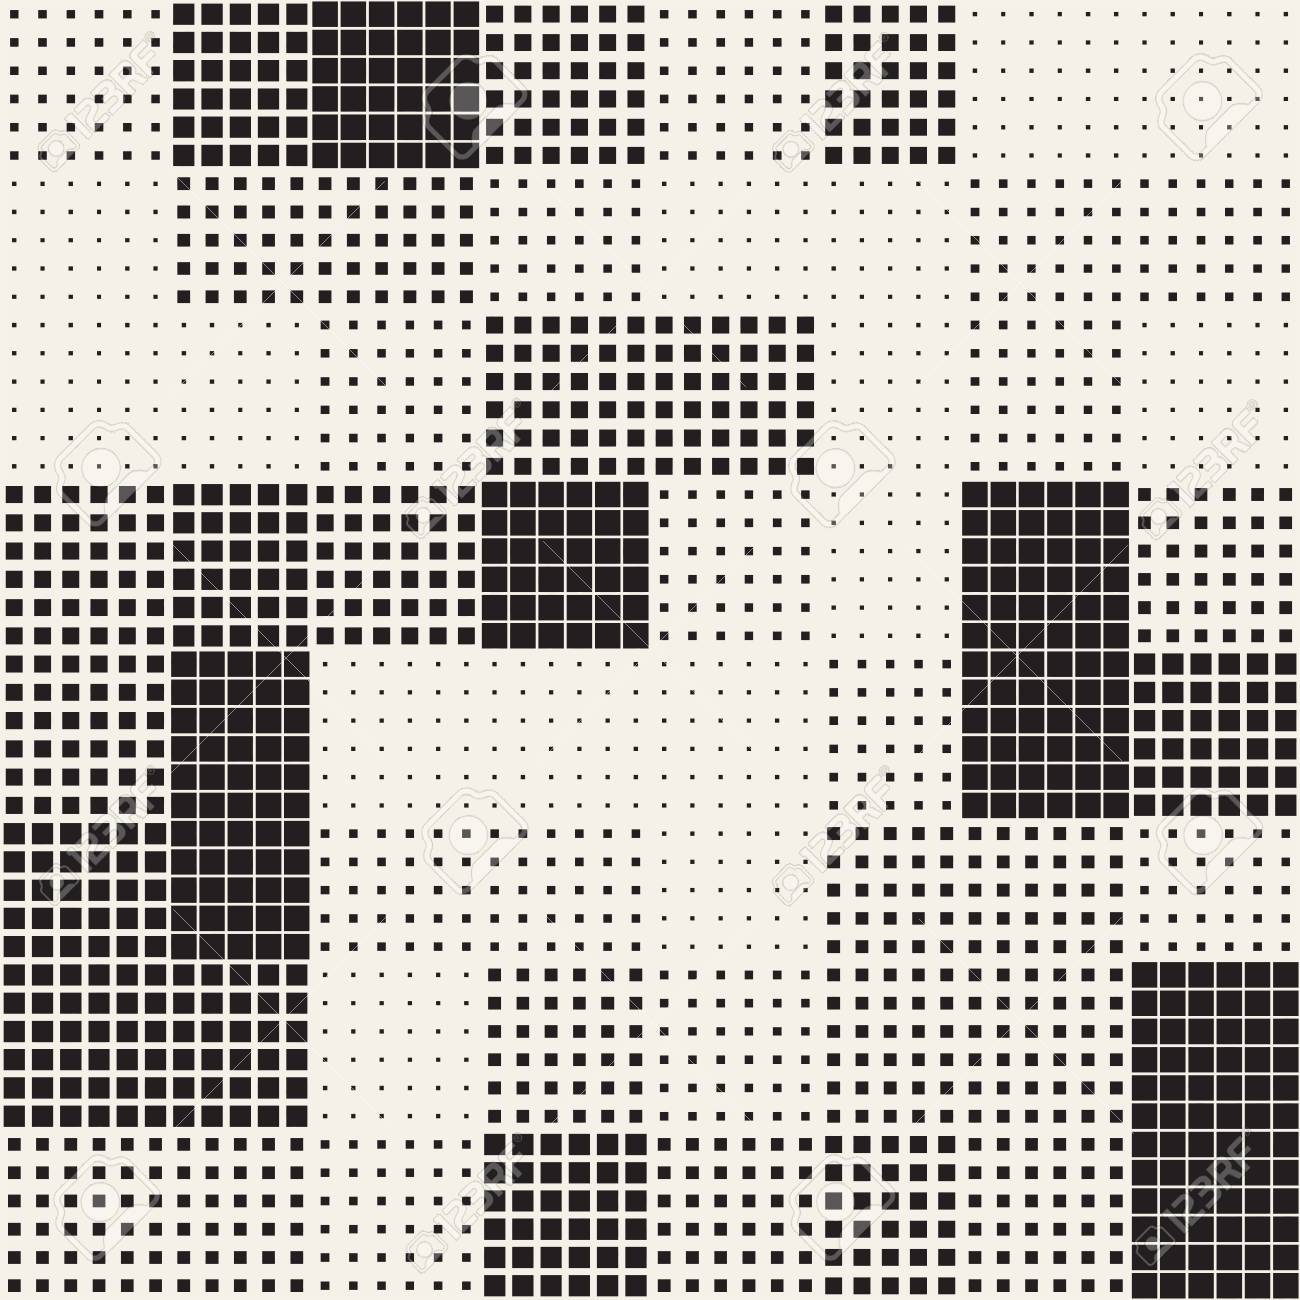 Modern Stylish Halftone Texture. Endless Abstract Background With Random Size Squares. Vector Seamless Chaotic Squares Mosaic Pattern - 91376761